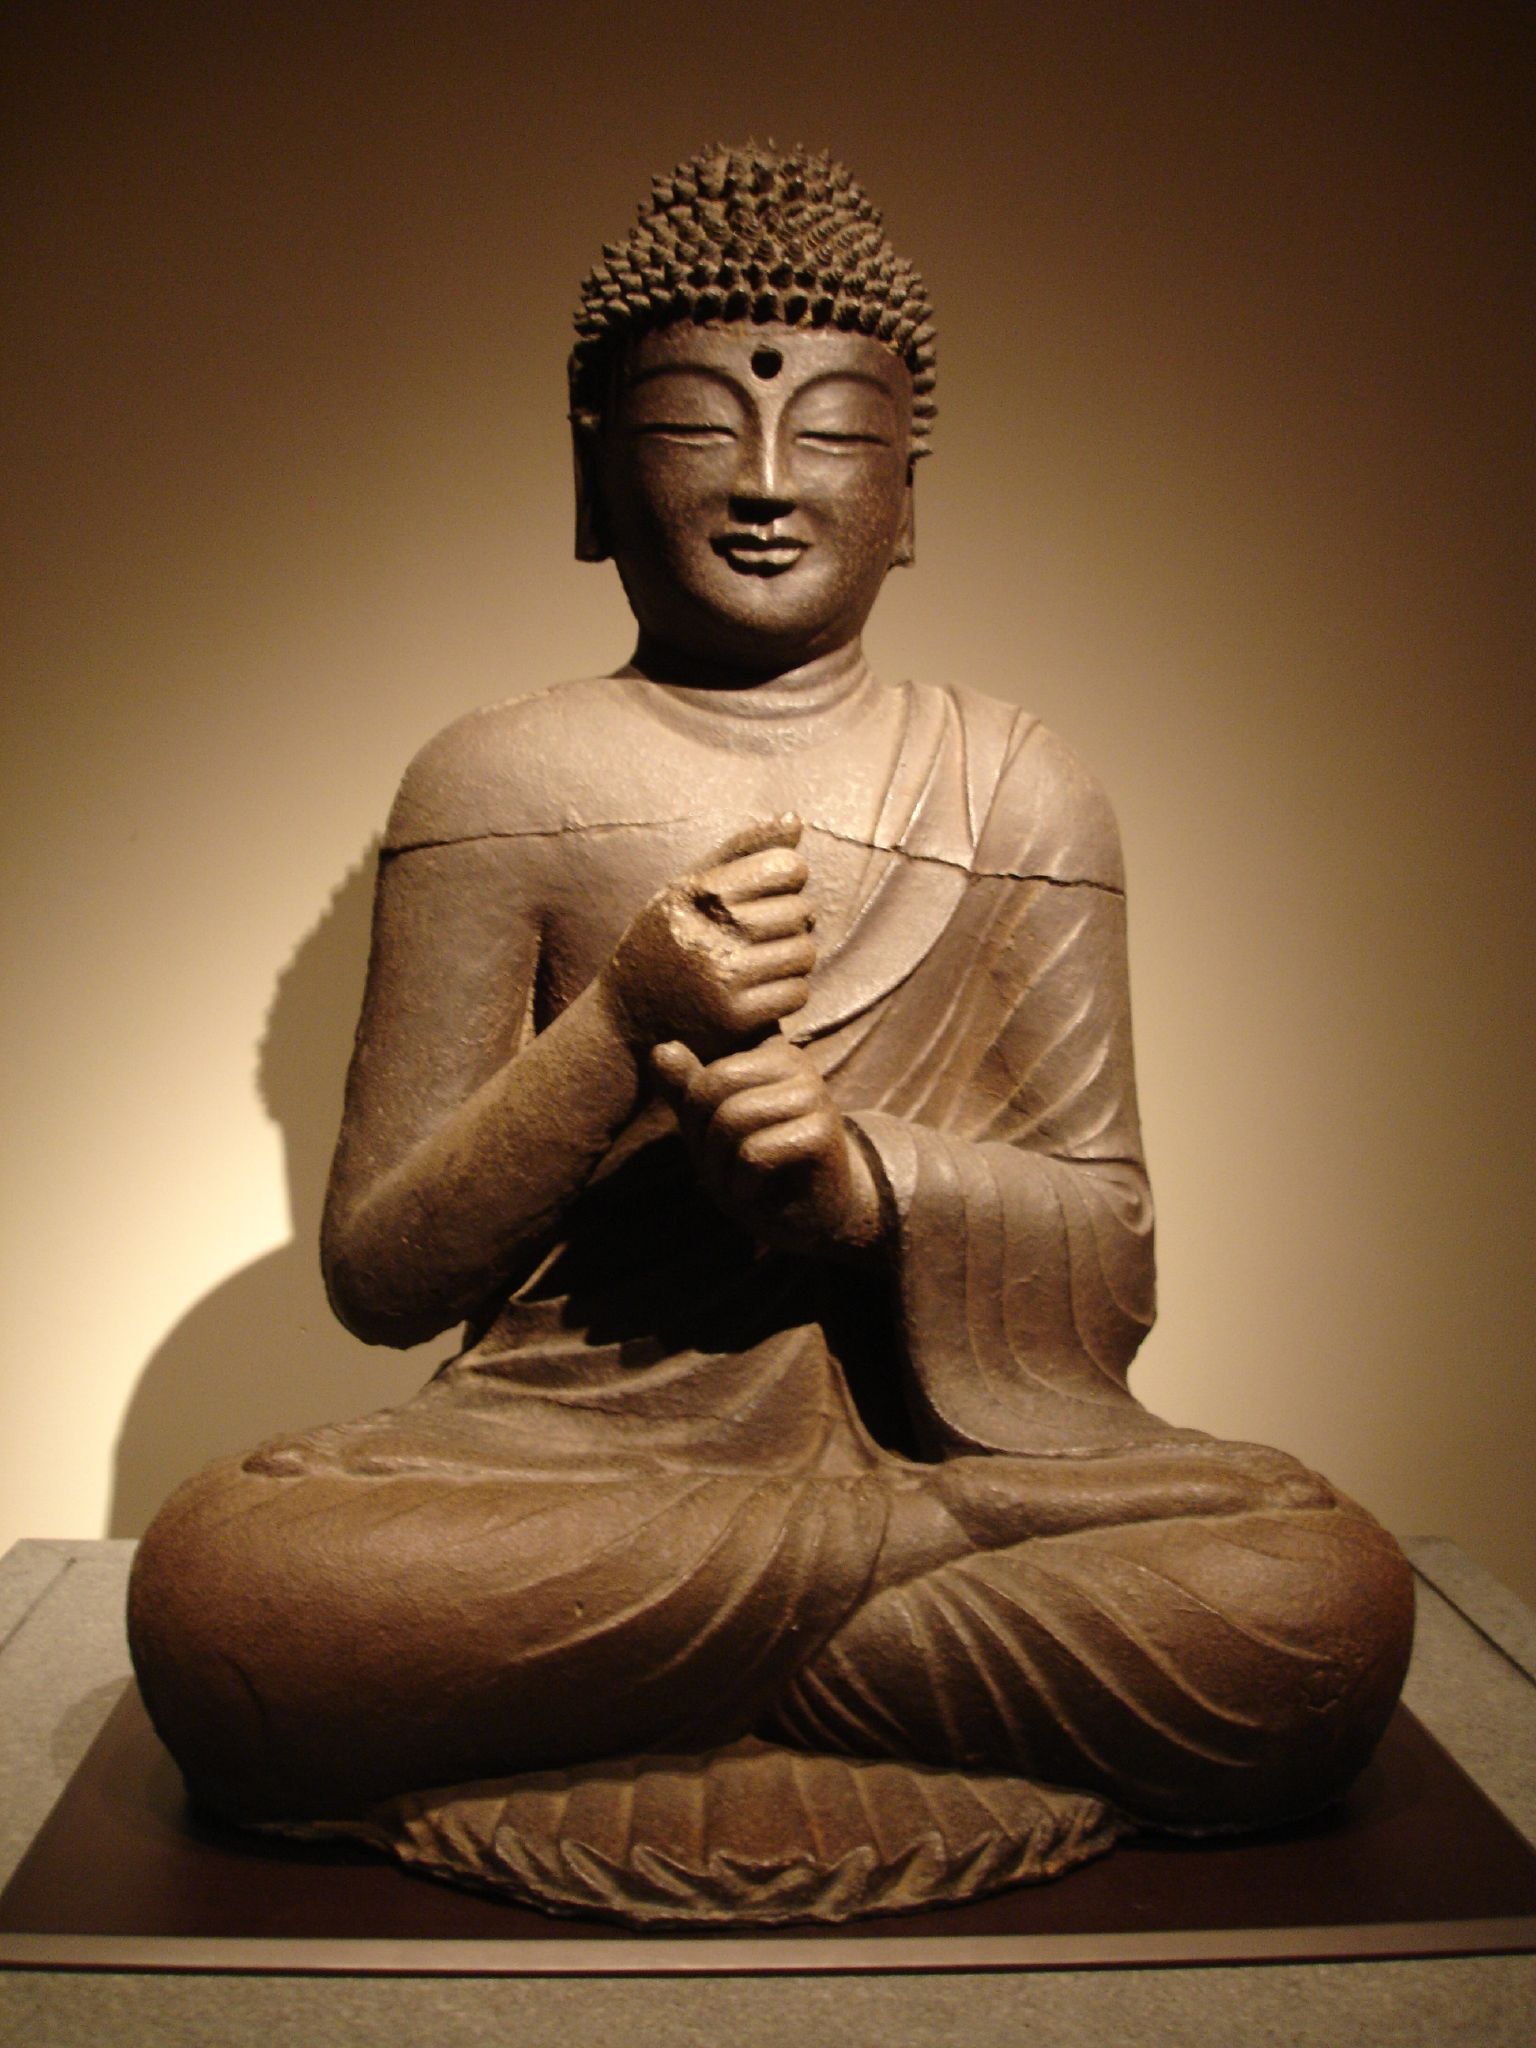 essay on theravada buddhism A question asked by many people is  what is the difference between theravada and mahayana buddhism to find the answer let us look at the history of buddhism and compare and contrast the beliefs and philosophies of the two.